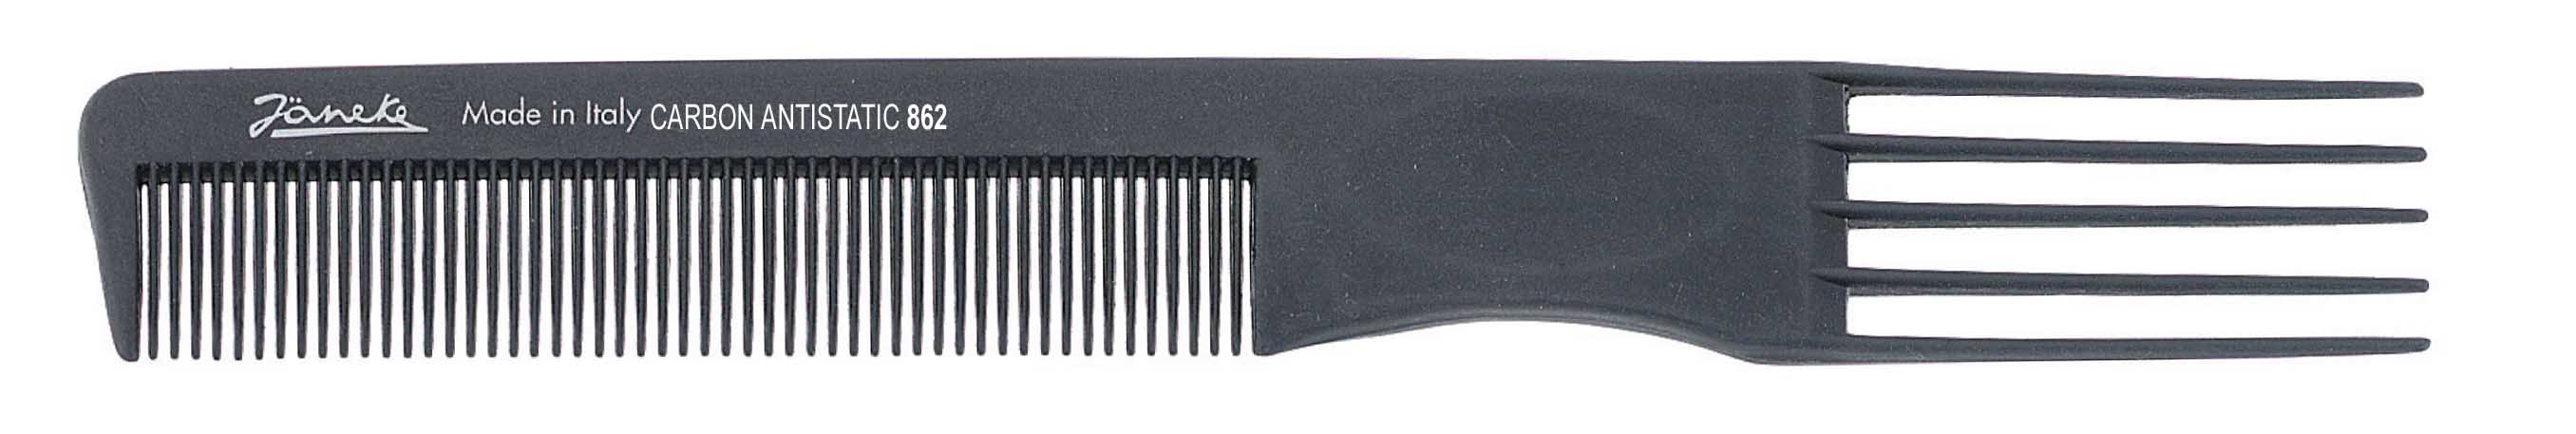 Comb with pick 21 cm Cod. 55862